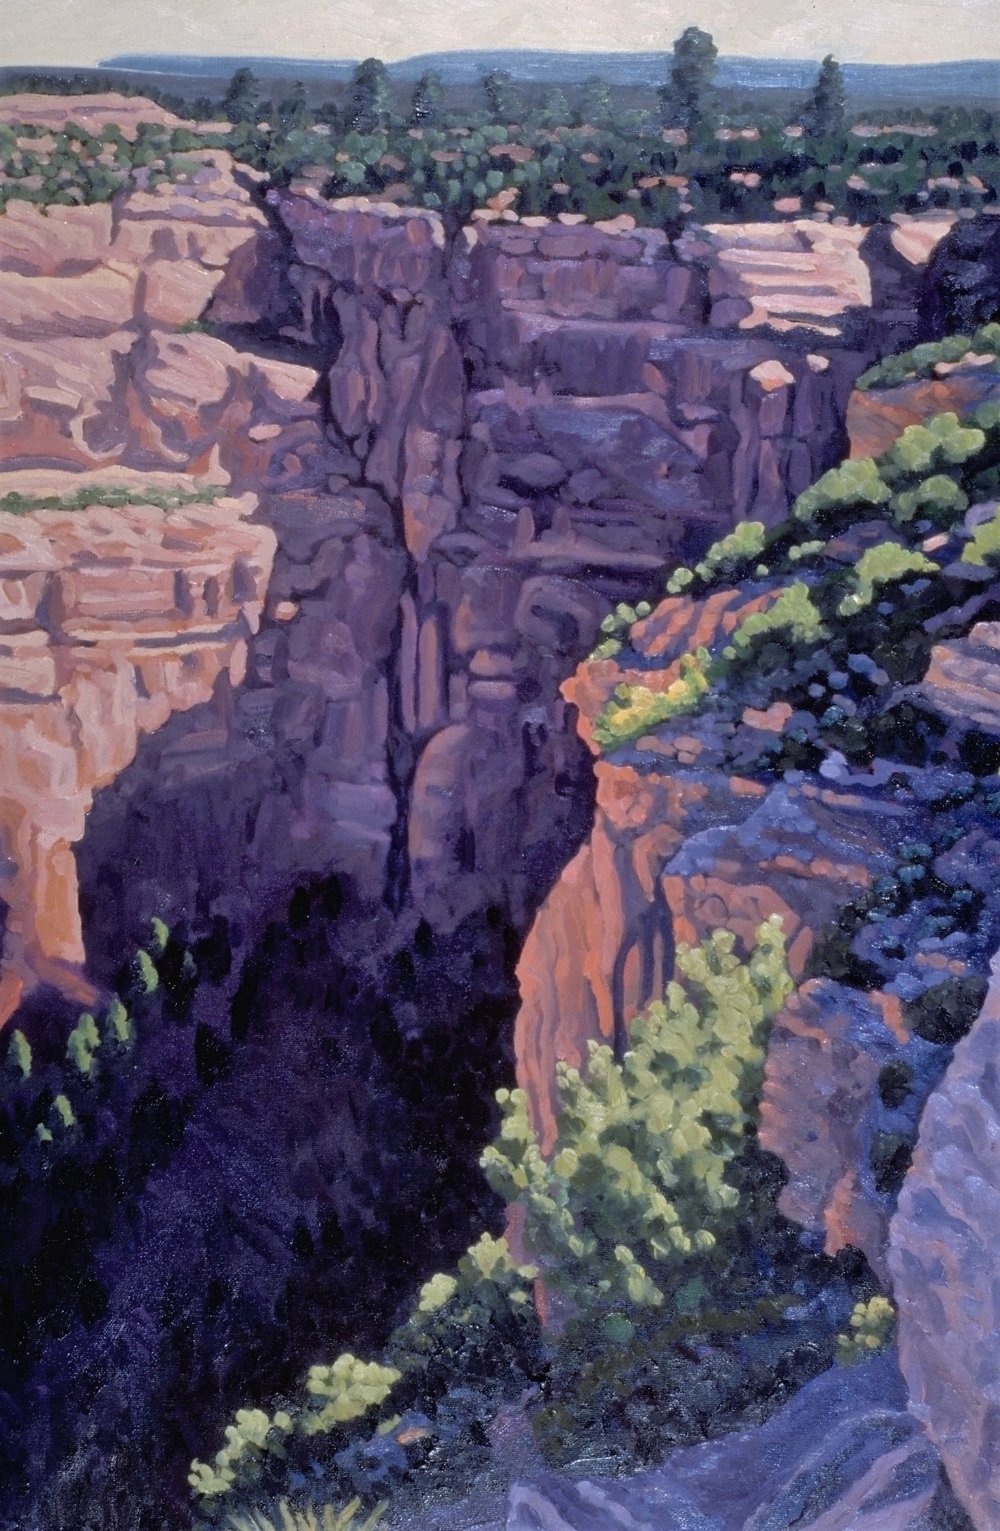 Afternoon Glow, Canyon de Chelley       30x20      Oil on Panel       2002